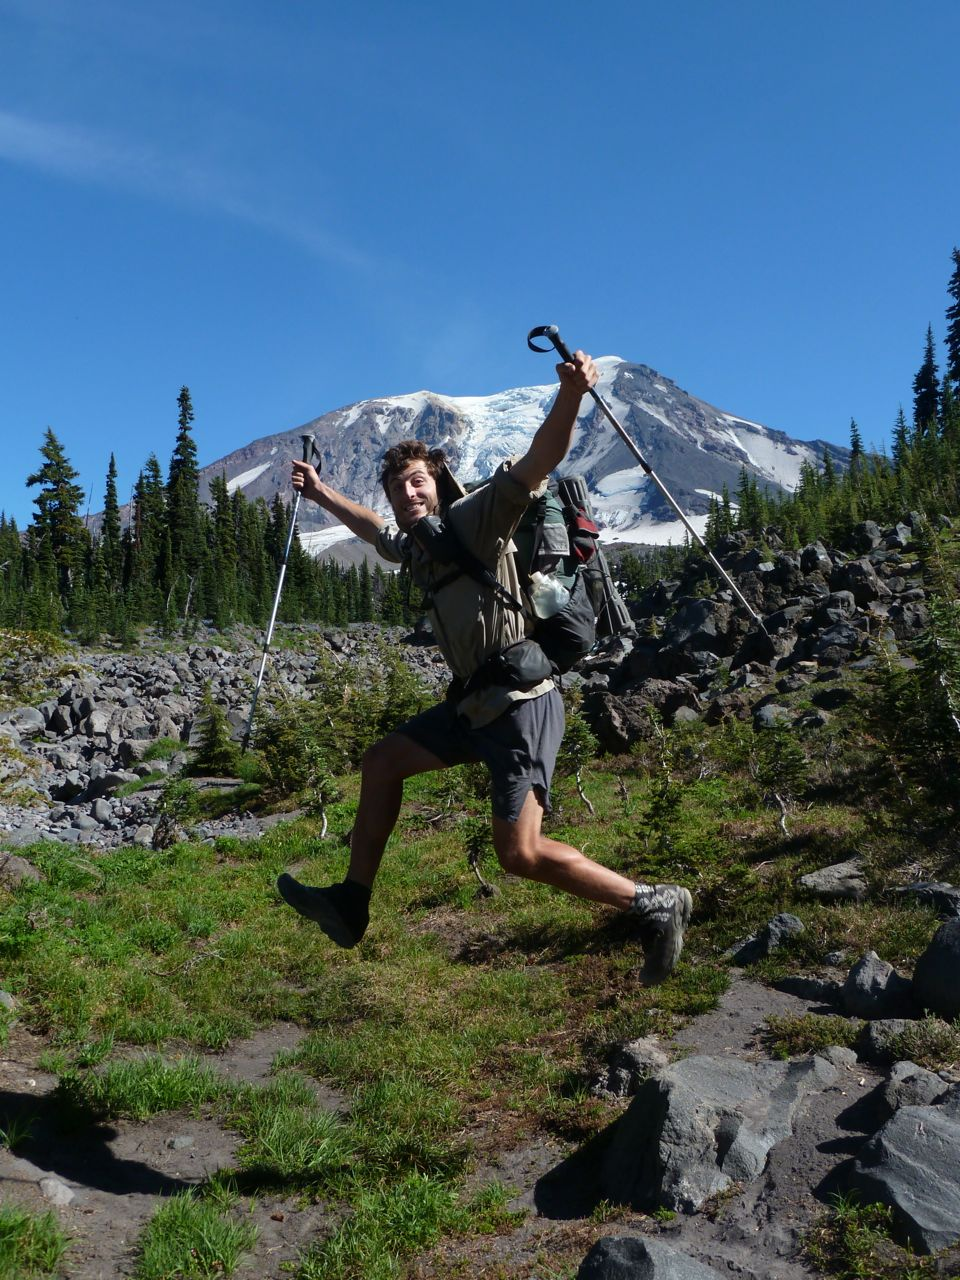 Karl Schmidt hiking the Pacific Crest Trail pictured here on Mount Adams